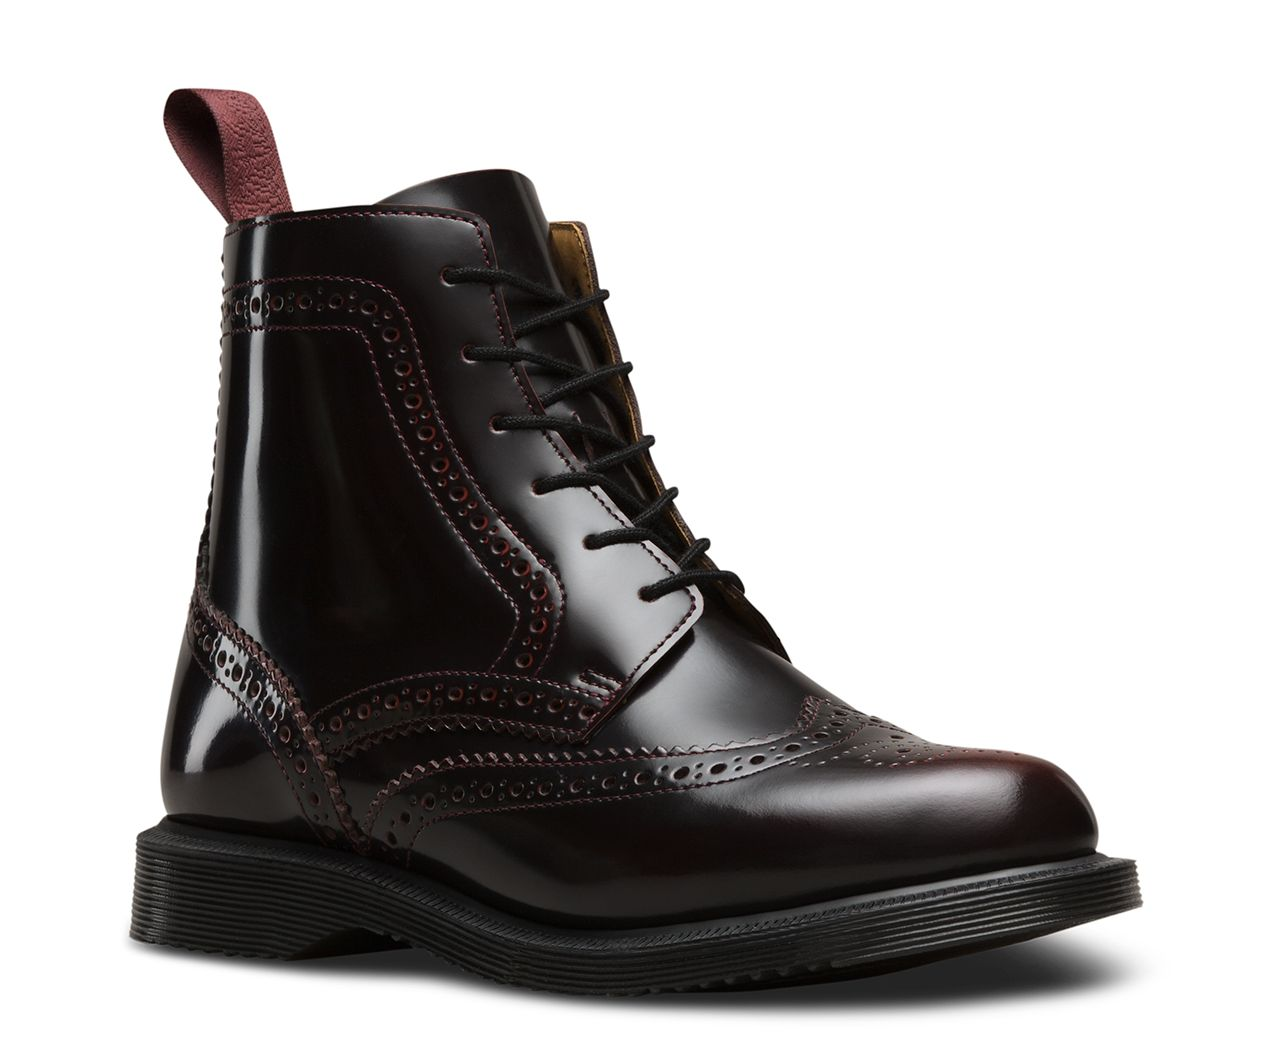 7a357a02f59 Dr martens delphine arcadia in 2019 | BLACK | Shoe boots, Boots ...